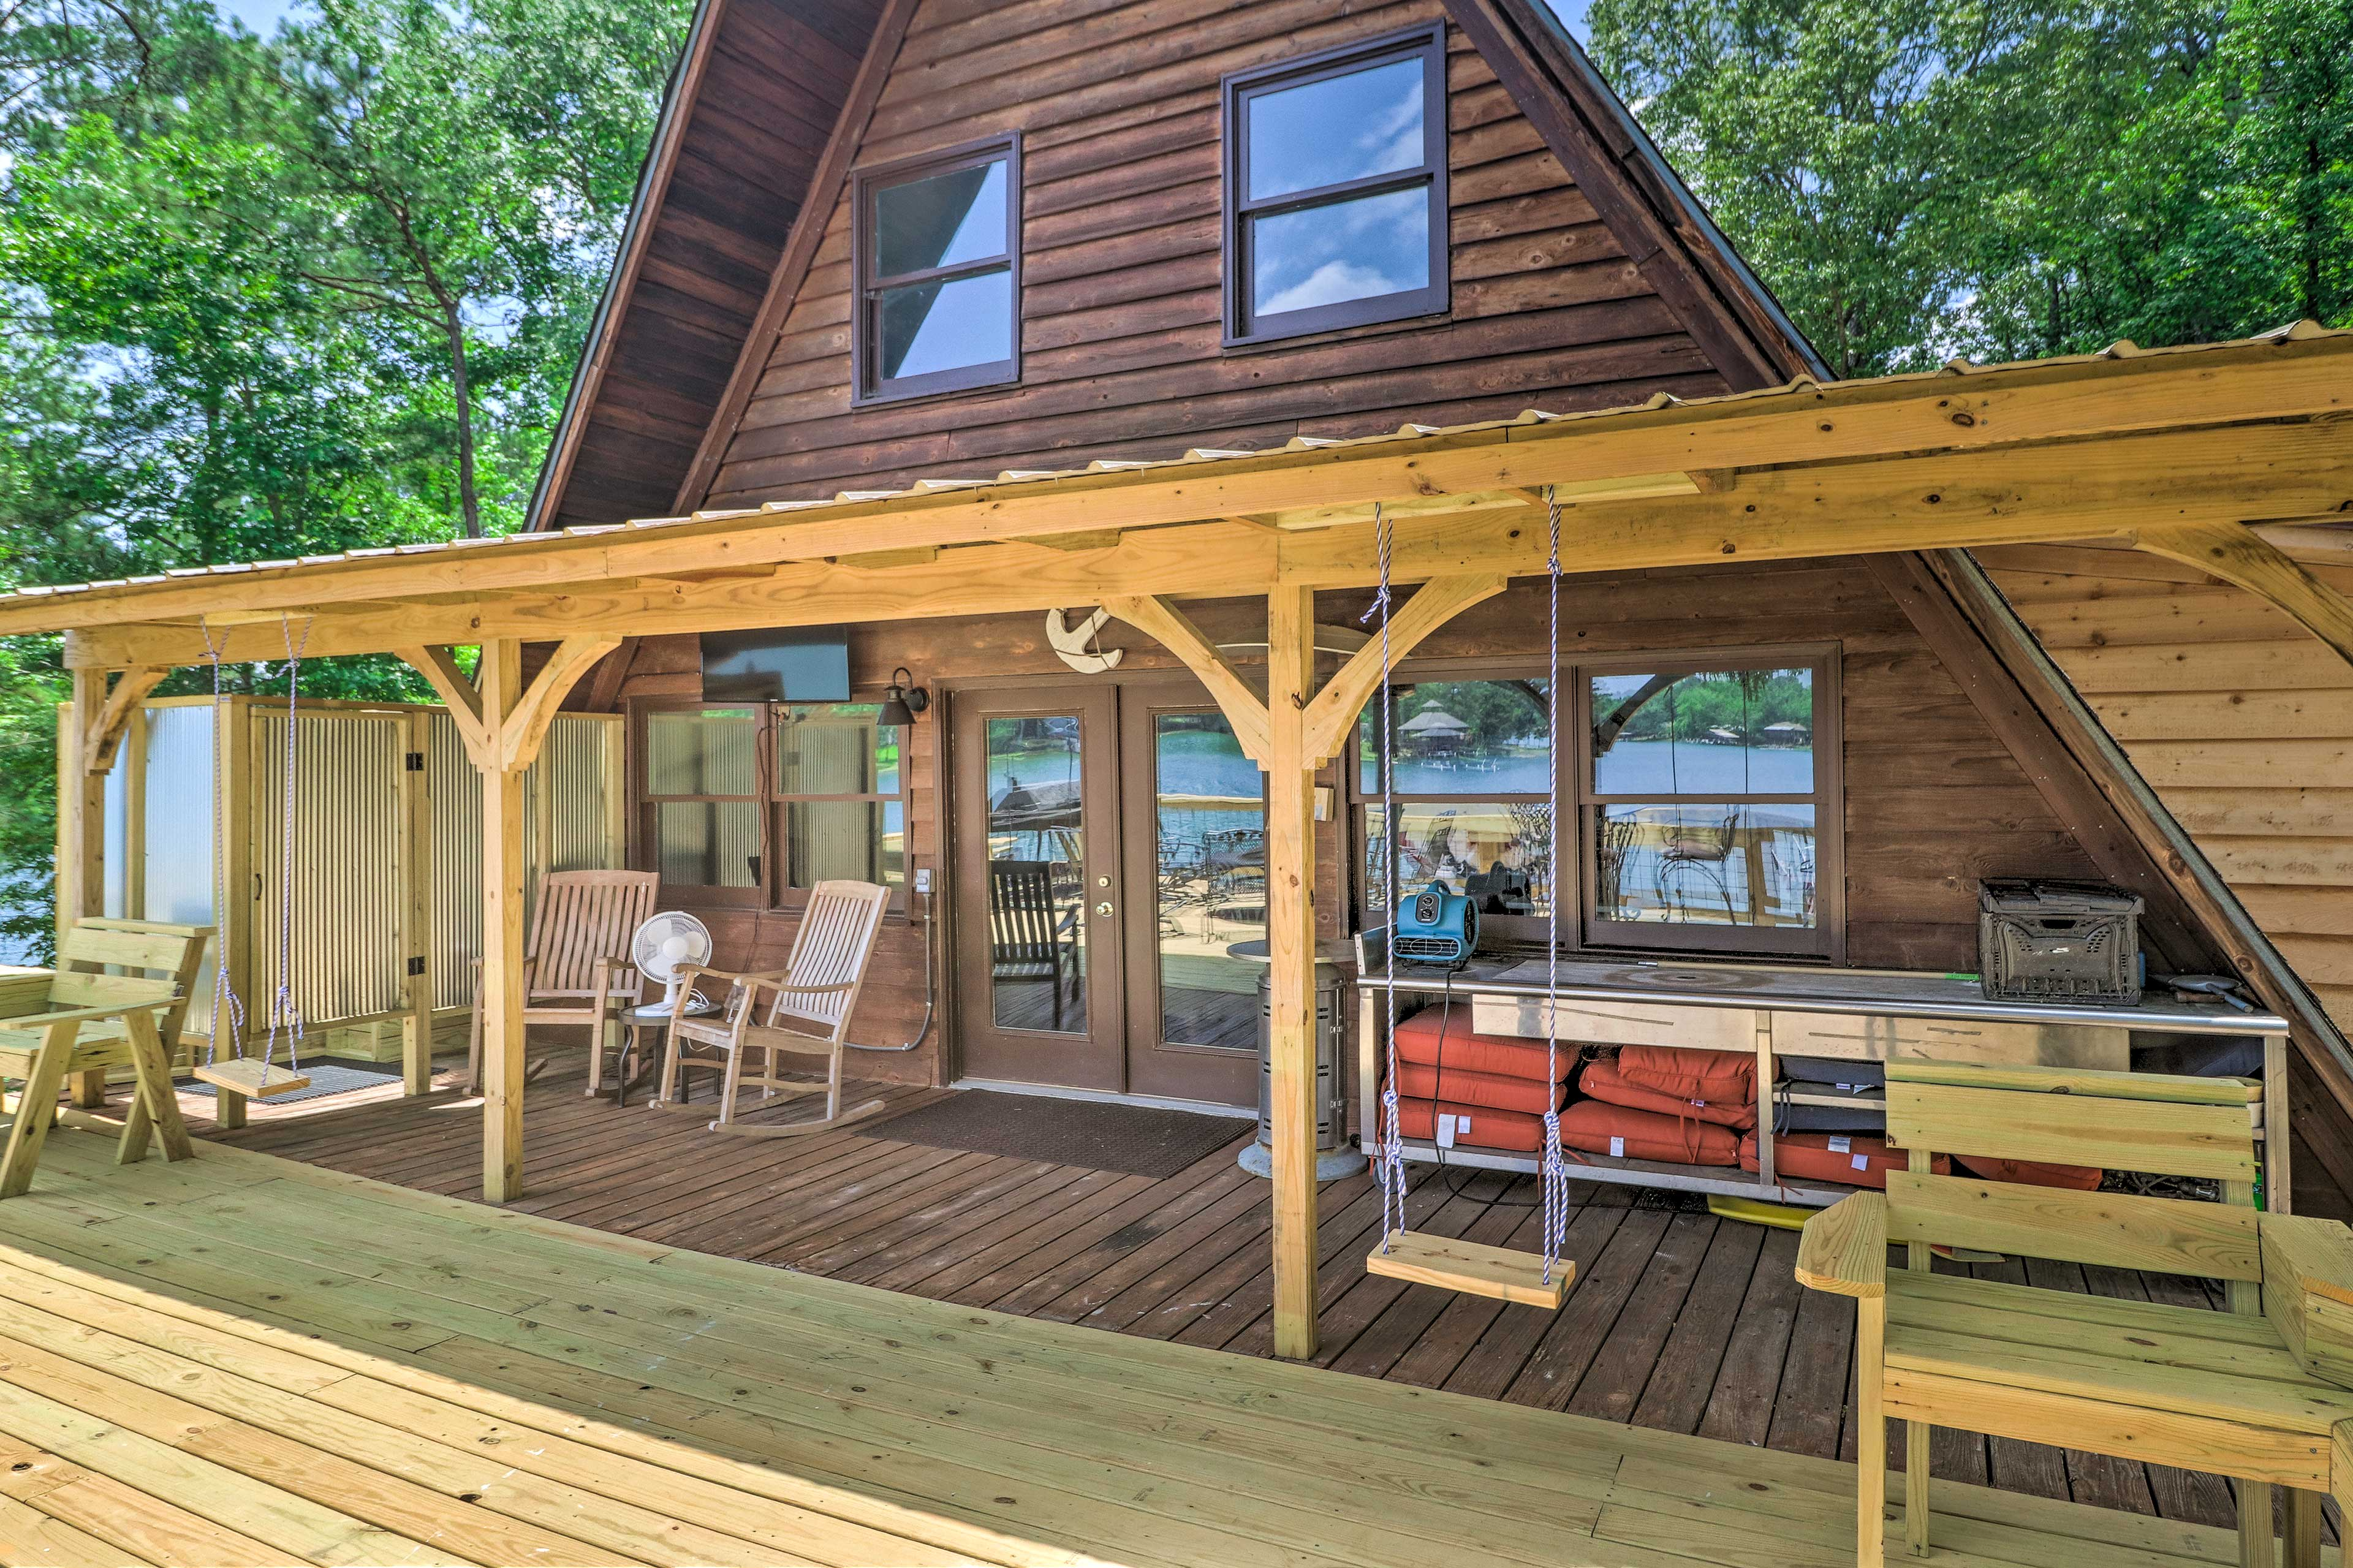 The spacious deck includes porch swings and rocking chairs.